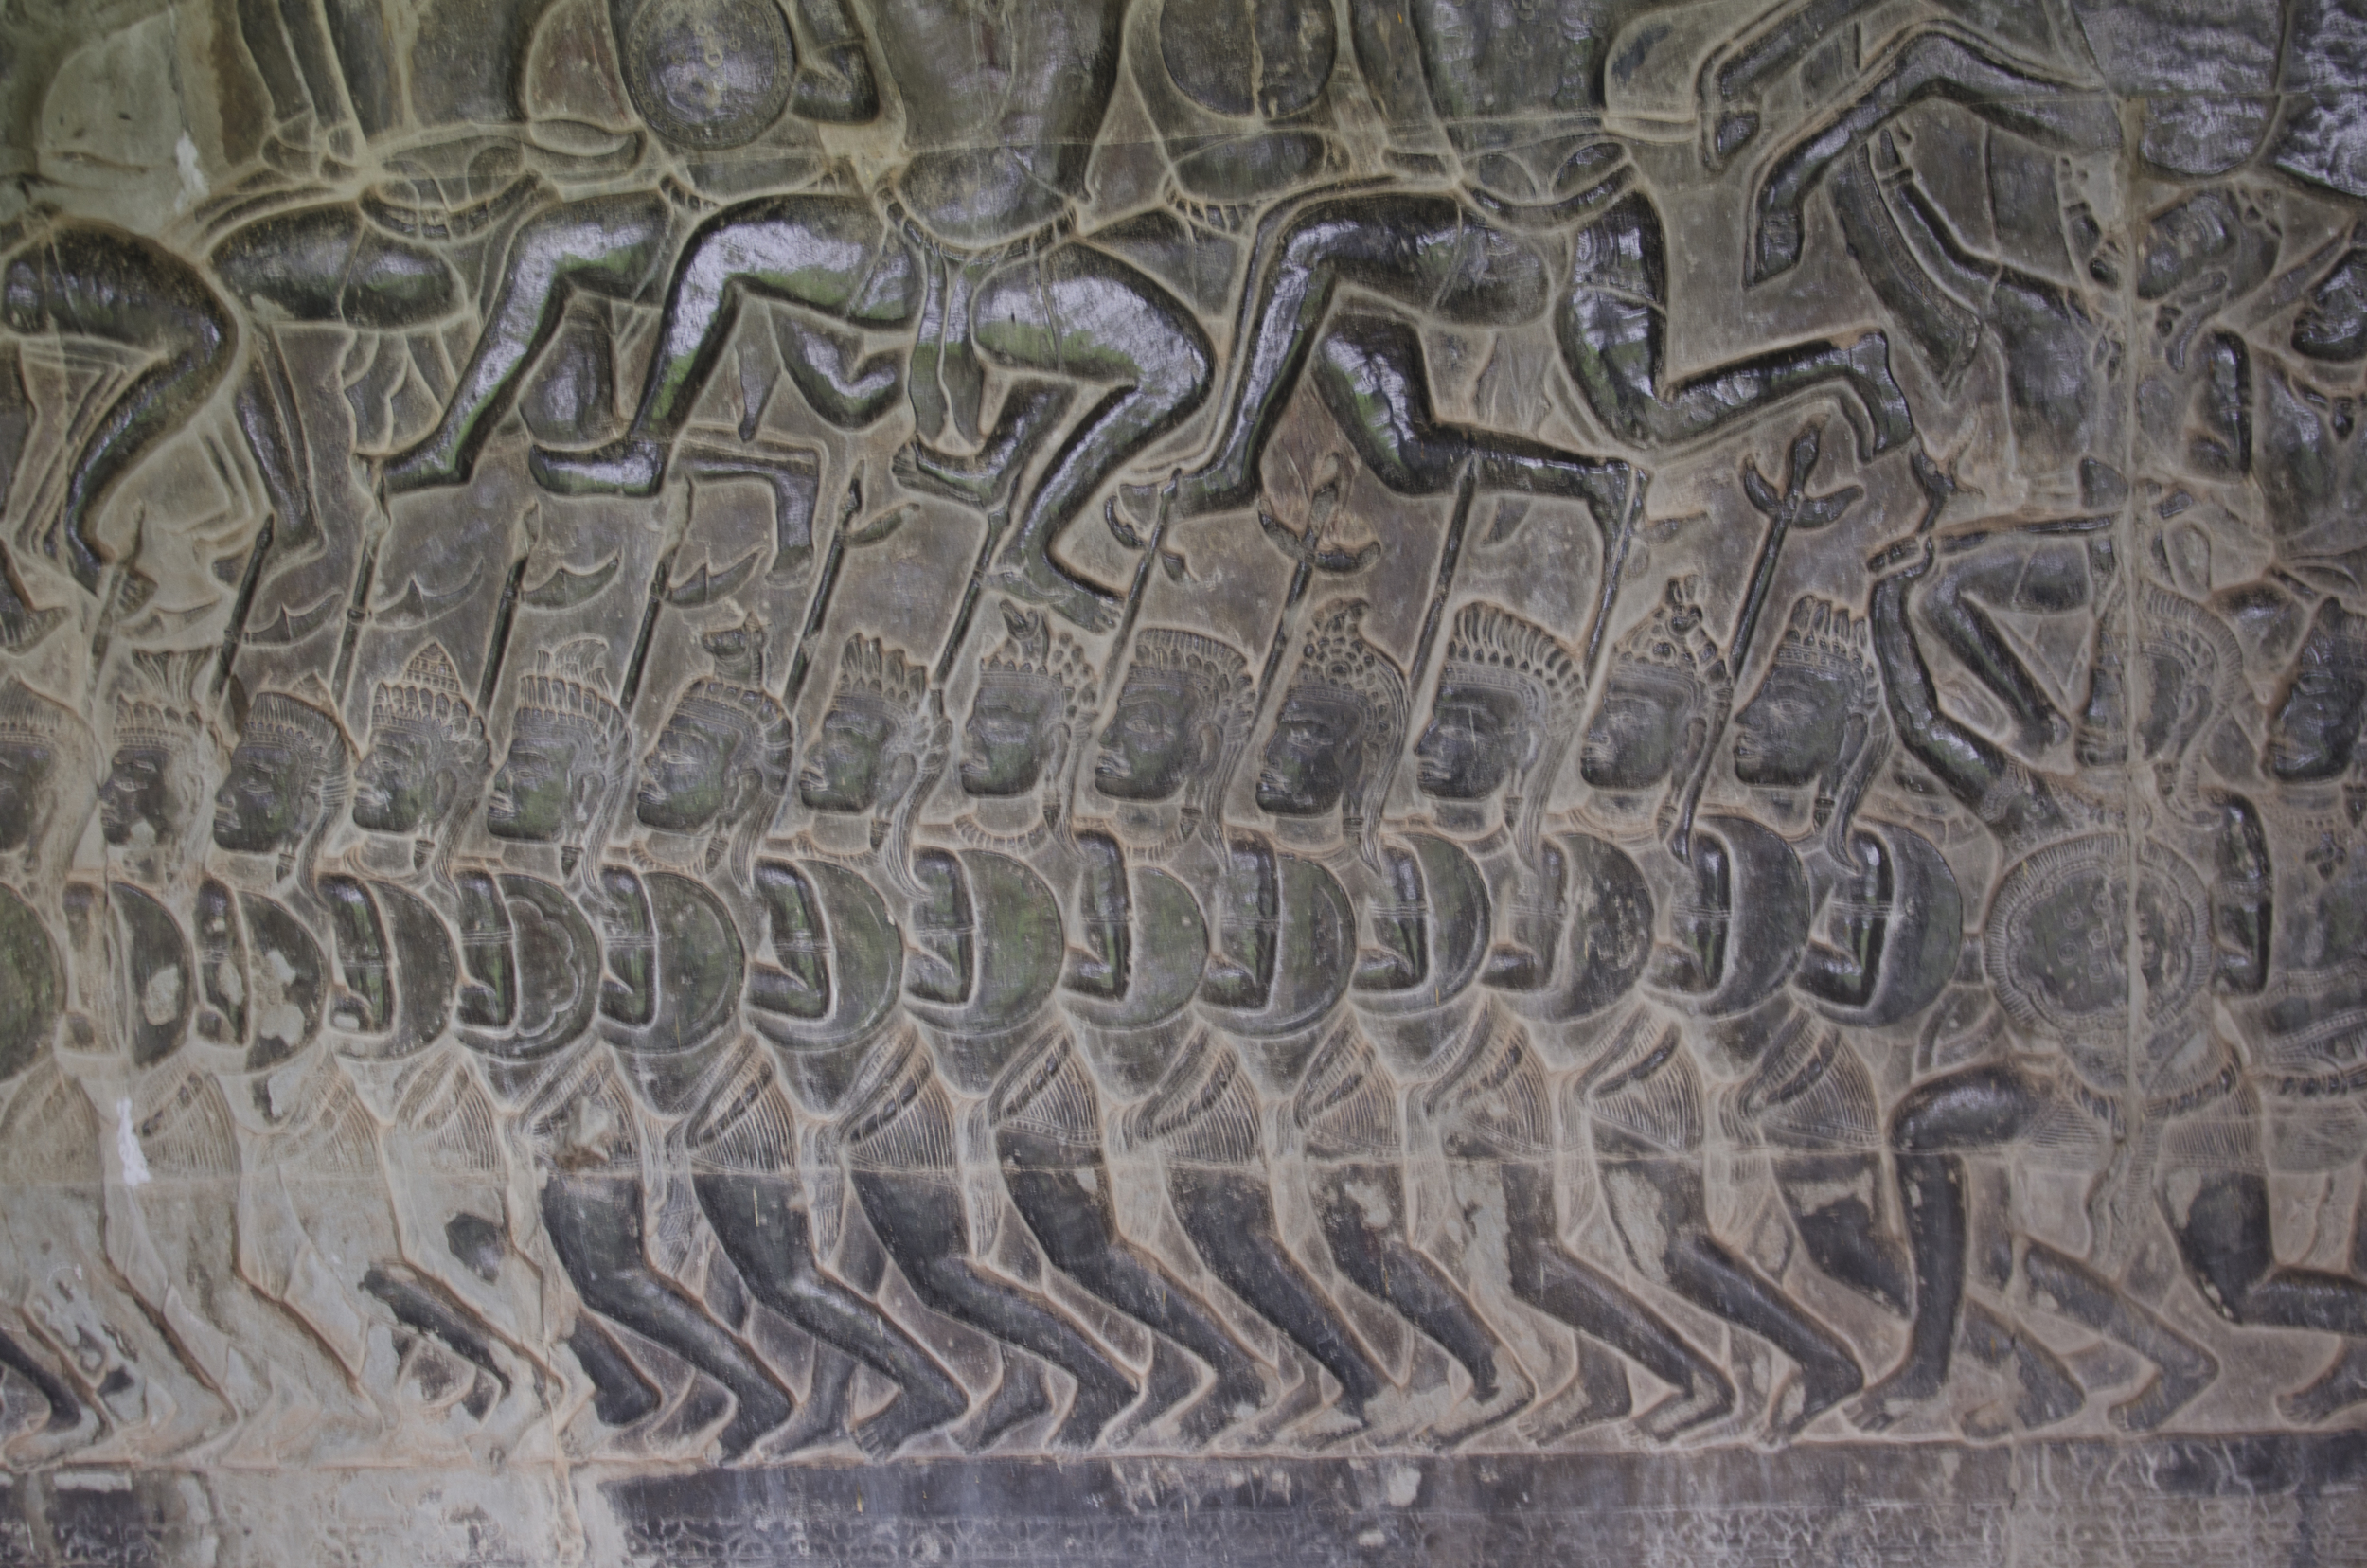 A close up sample of the reliefs carved on the gallery walls